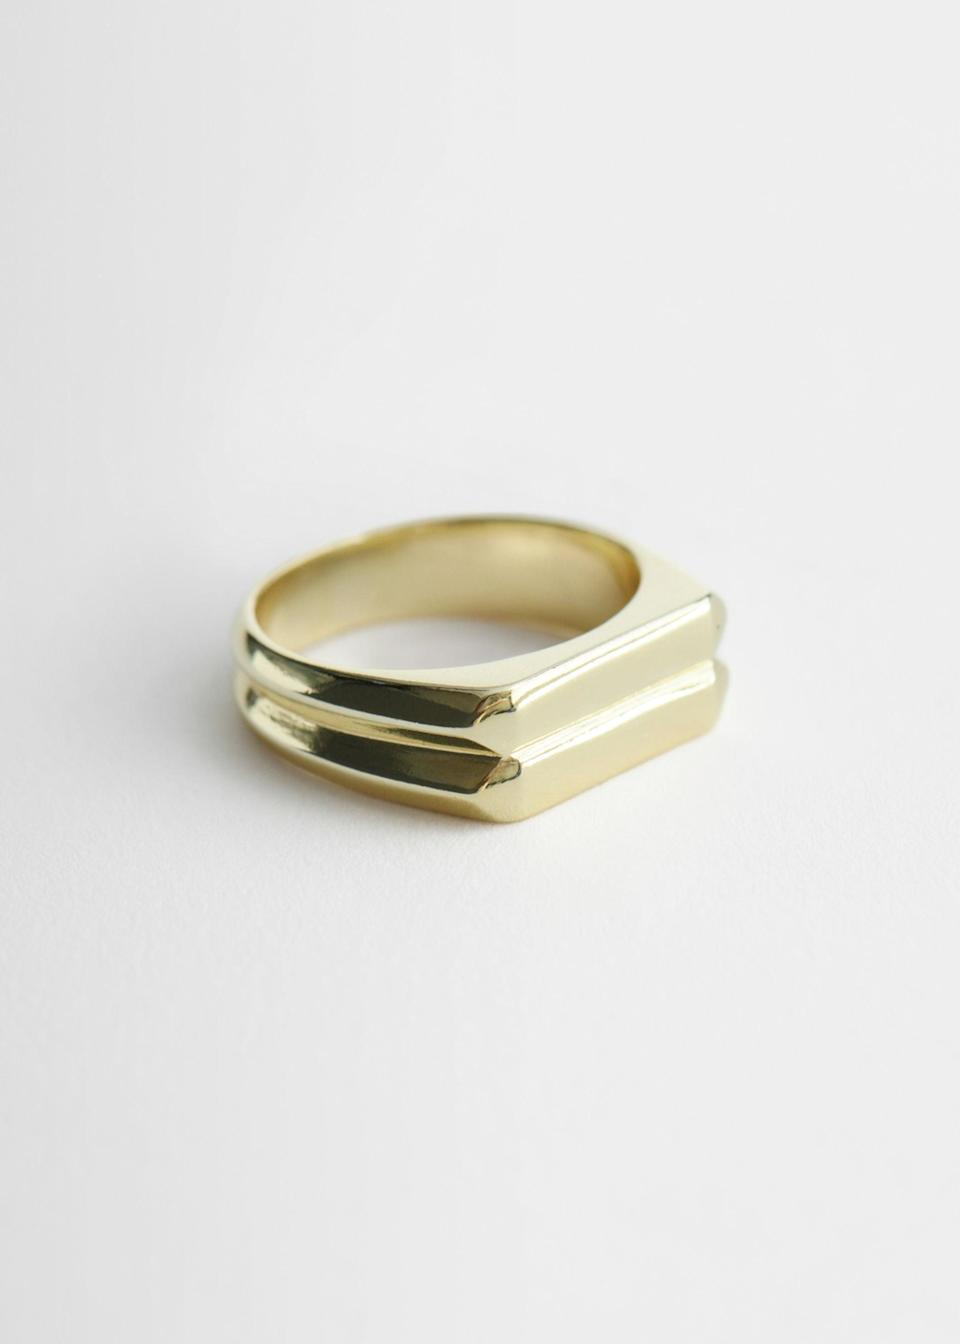 "<br><br><strong>& Other Stories</strong> Embossed Signet Ring, $, available at <a href=""https://go.skimresources.com/?id=30283X879131&url=https%3A%2F%2Fwww.stories.com%2Fen_usd%2Fjewellery%2Frings%2Fproduct.embossed-signet-ring-gold.0924423001.html"" rel=""nofollow noopener"" target=""_blank"" data-ylk=""slk:& Other Stories"" class=""link rapid-noclick-resp"">& Other Stories</a>"